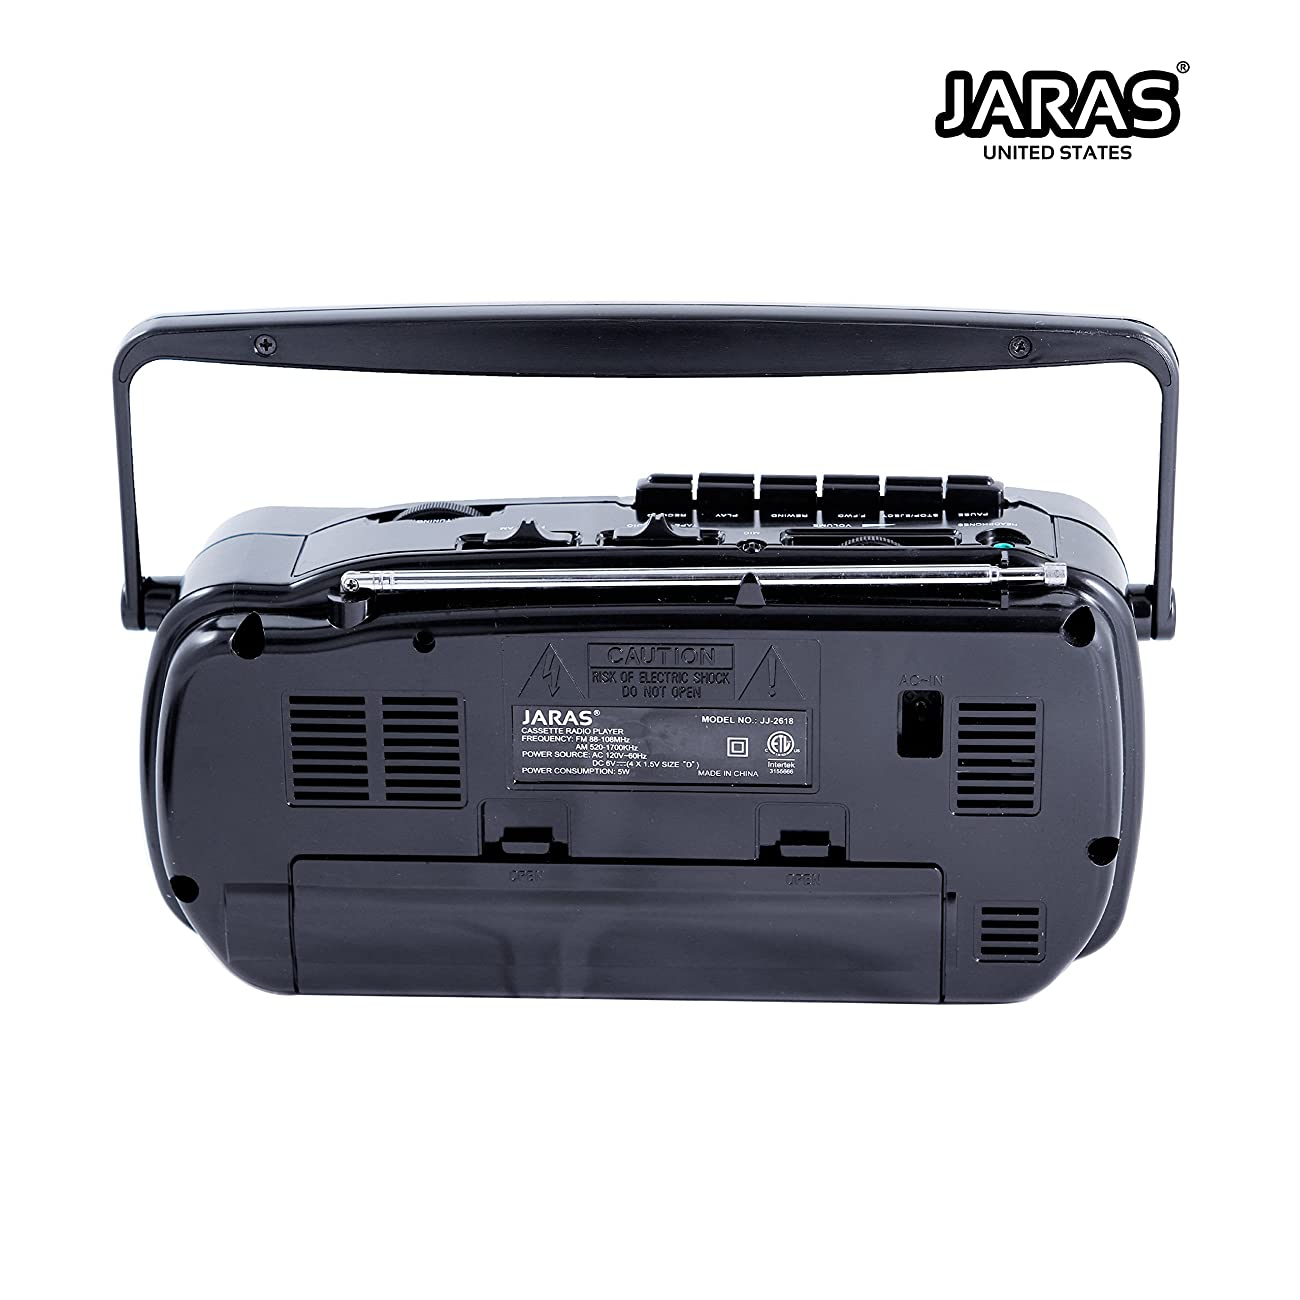 Jaras JJ-2618 Limited Edition Portable Boombox Tape Cassette Player/recorder with AM/FM Radio Stereo Speakers & Headphone Jack 3